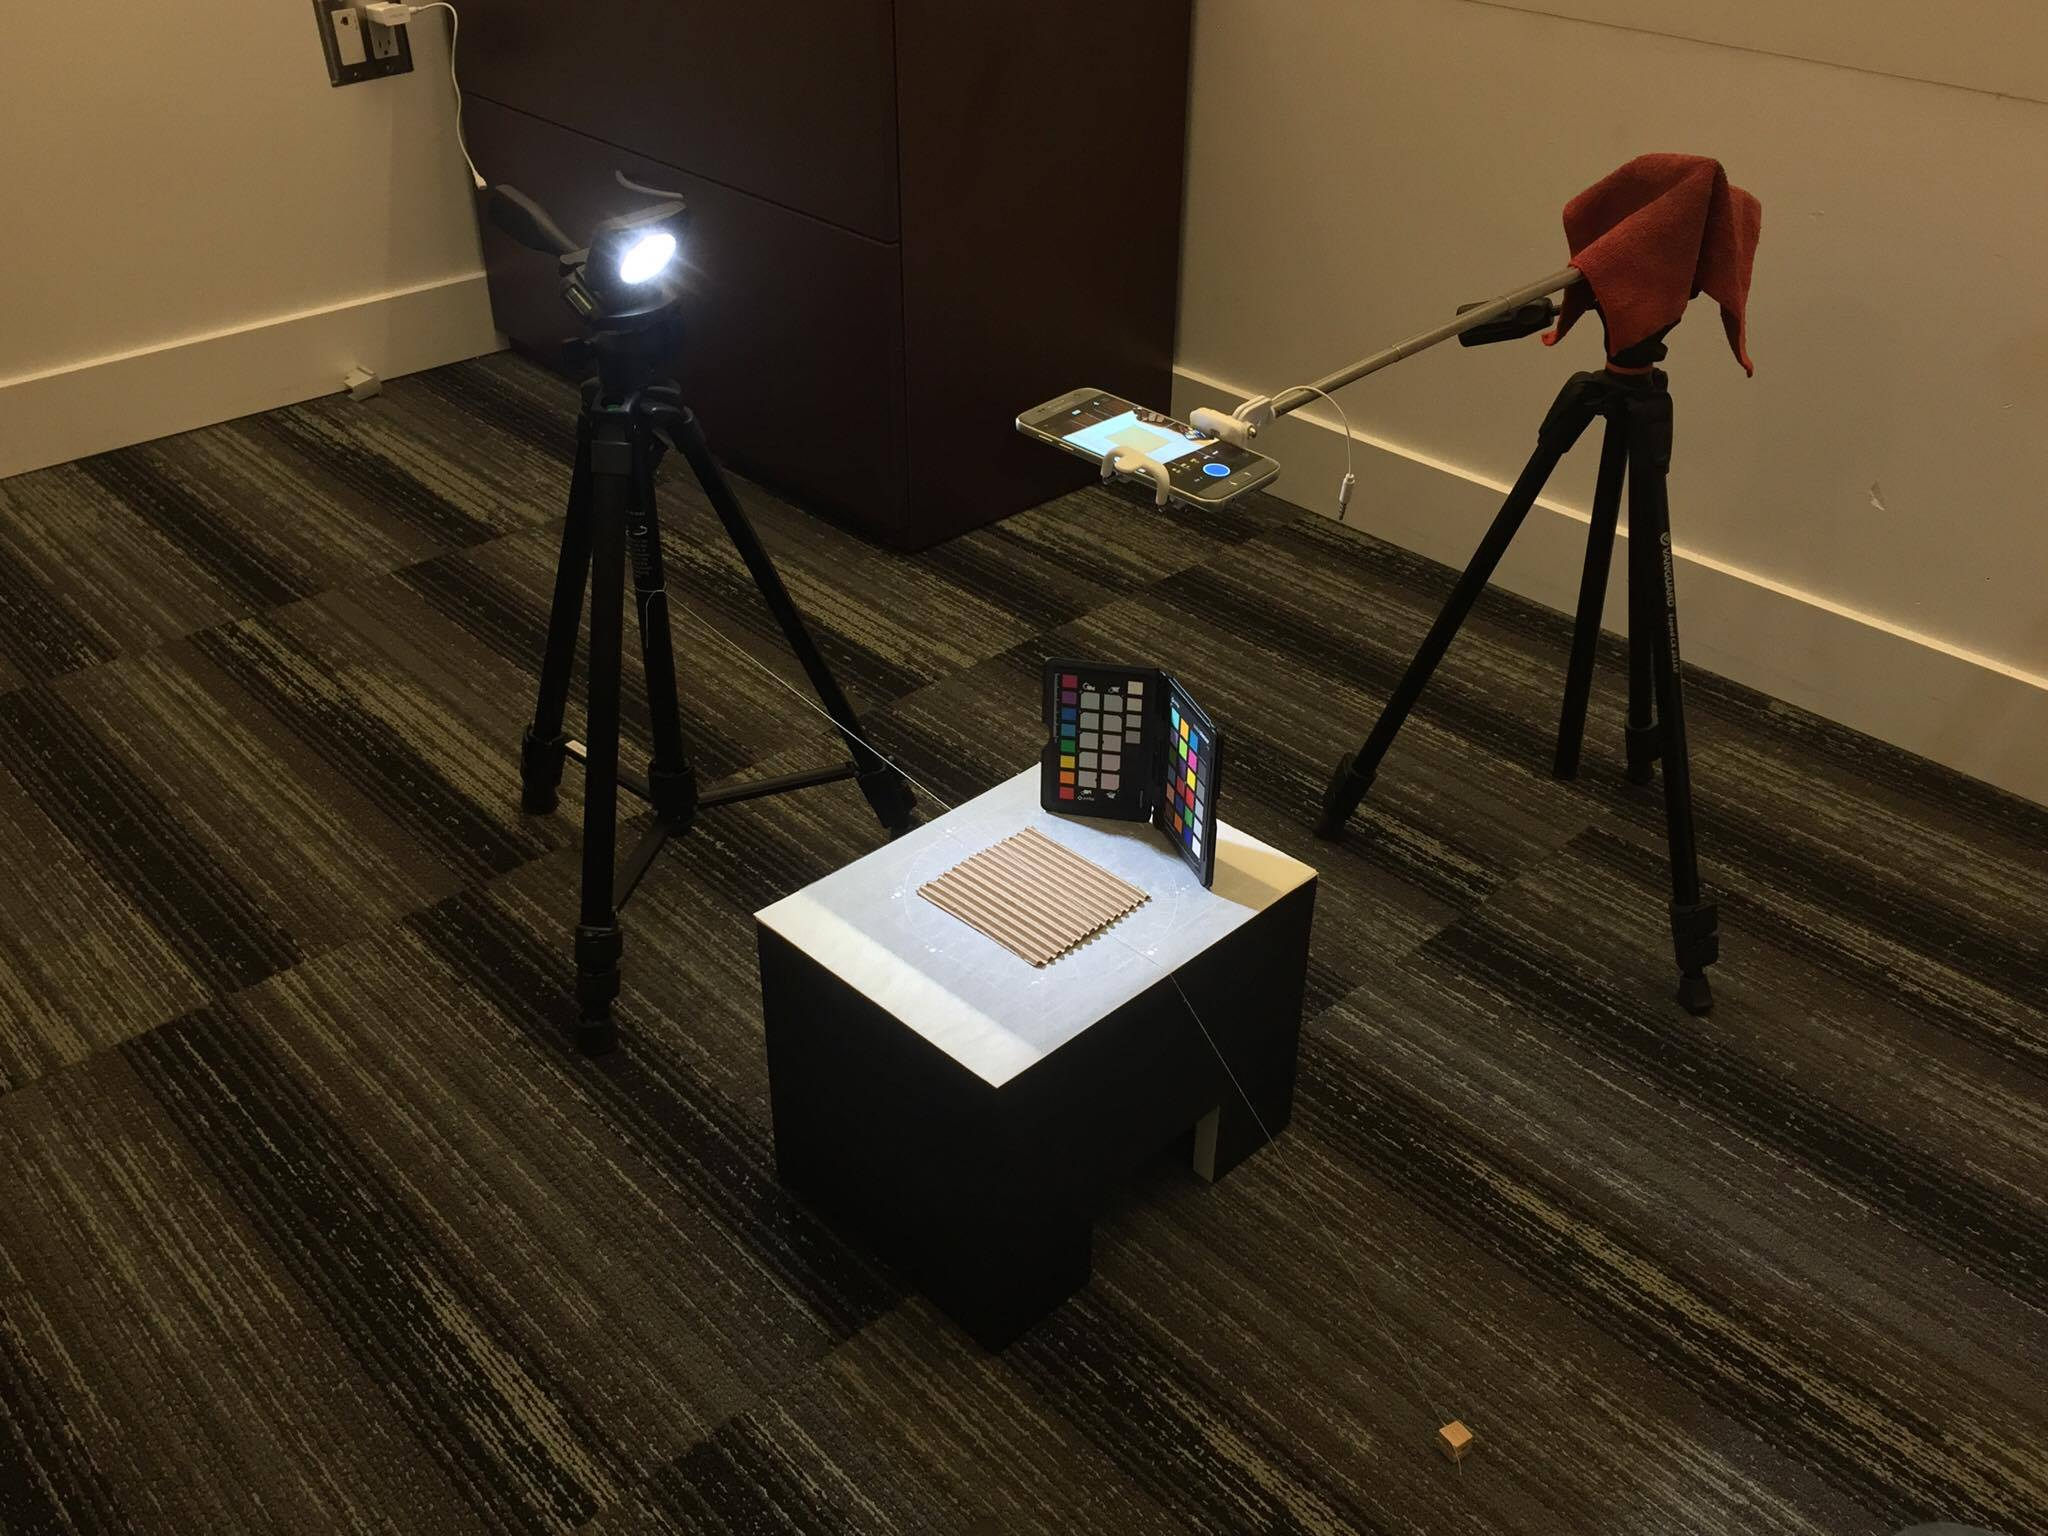 Material Scanning rig (from left to right): Mountable LED light on tripod, Material scanning box (Thanks Ewan!), Material sample, multi angle sheet, tracing paper, x-Rite Colorchecker or Macbeth Chart, Smart Phone capable of capturing DNG in Adobe Lightroom Mobile App, modified selfie stick mounted to another tripod.